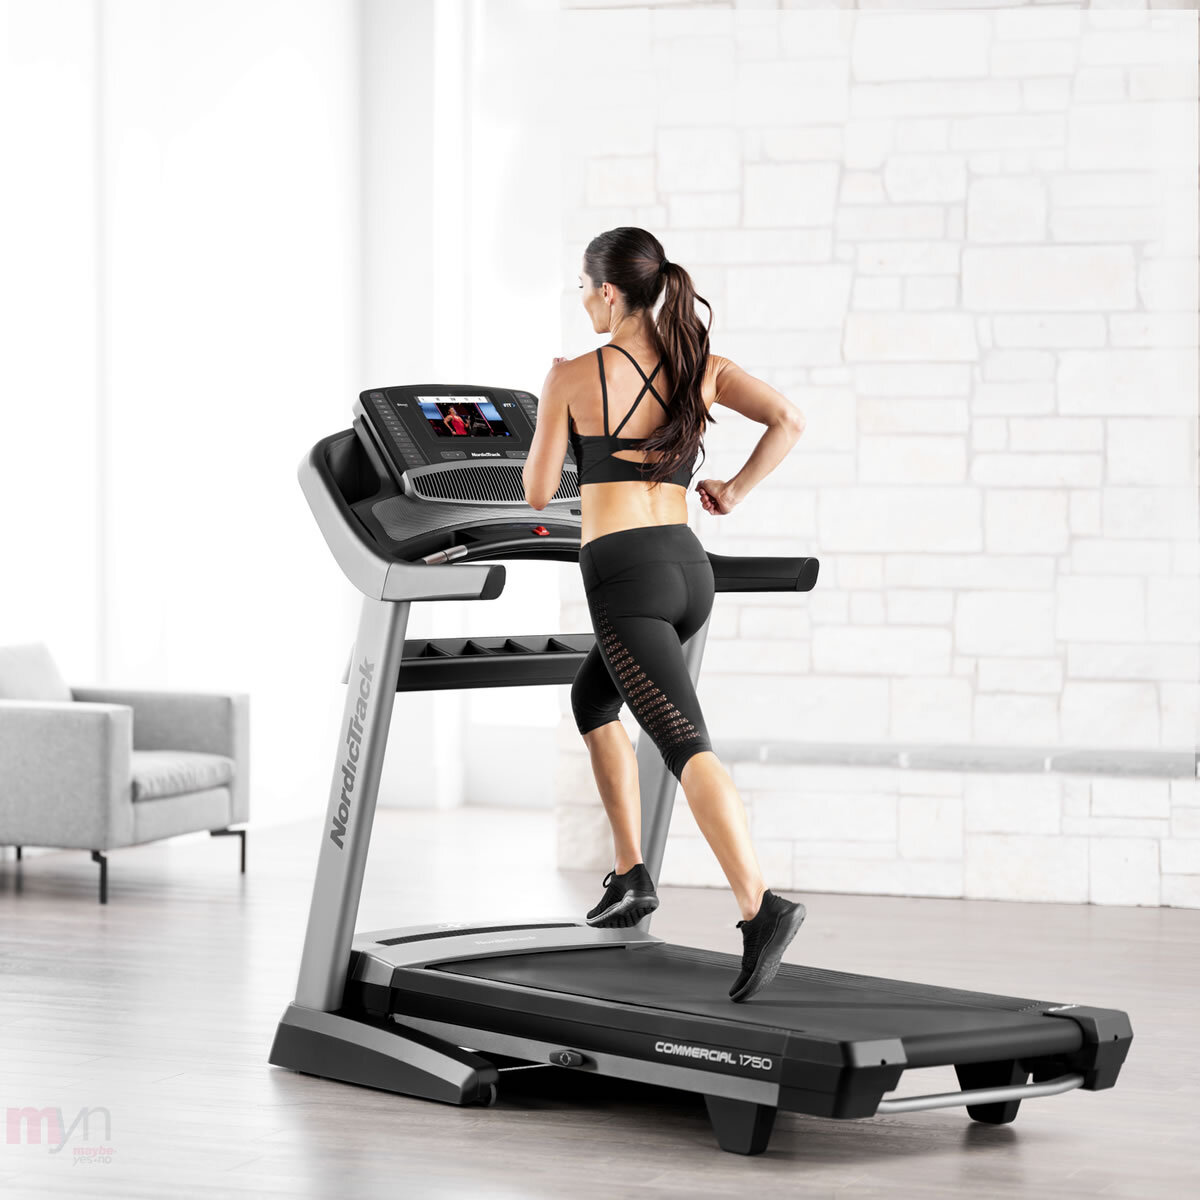 The C1750 has a Spacious running deck  and is a durable treadmill that will support multiple users is powered by iFit interactive personal training for your home gym